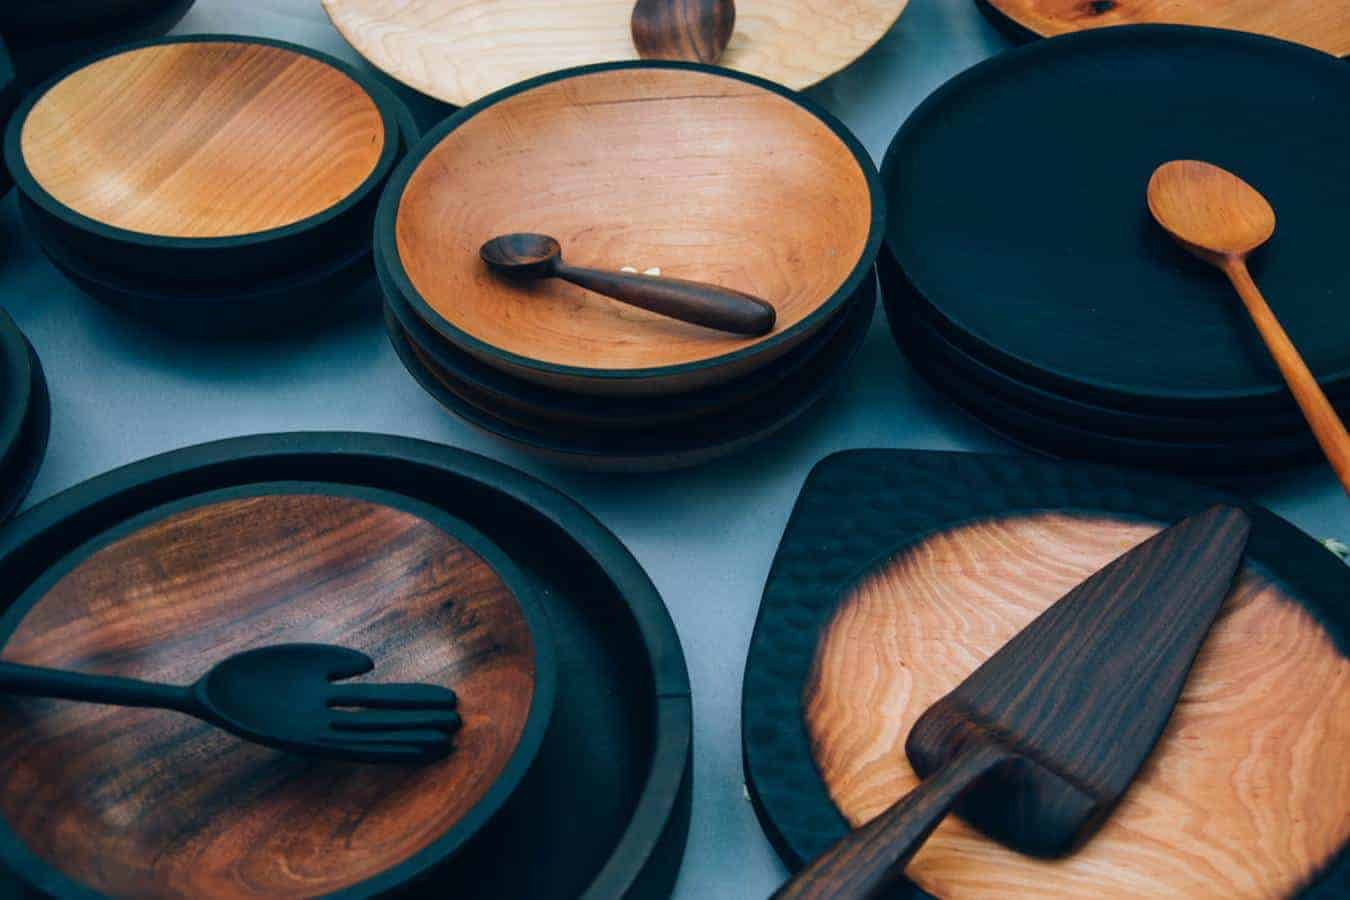 A set of wooden plates, bowls, and spoons